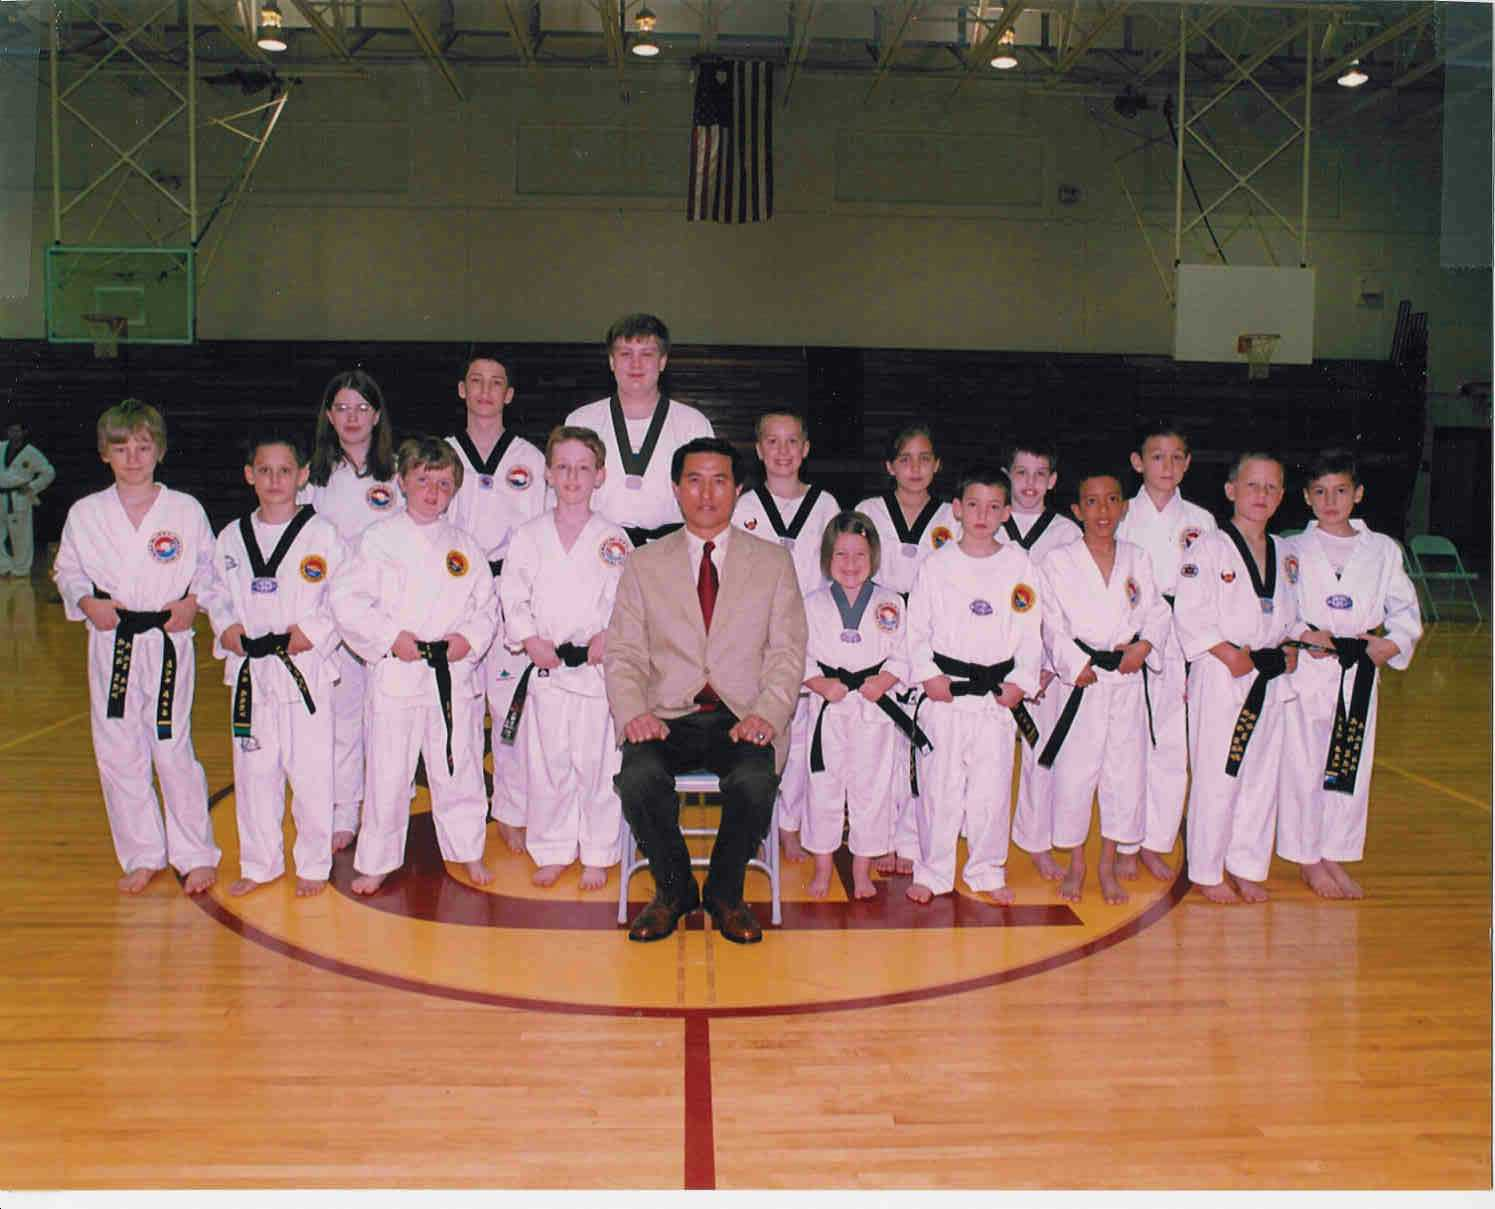 June 22, 2001 Children Black Belt Members, 2001